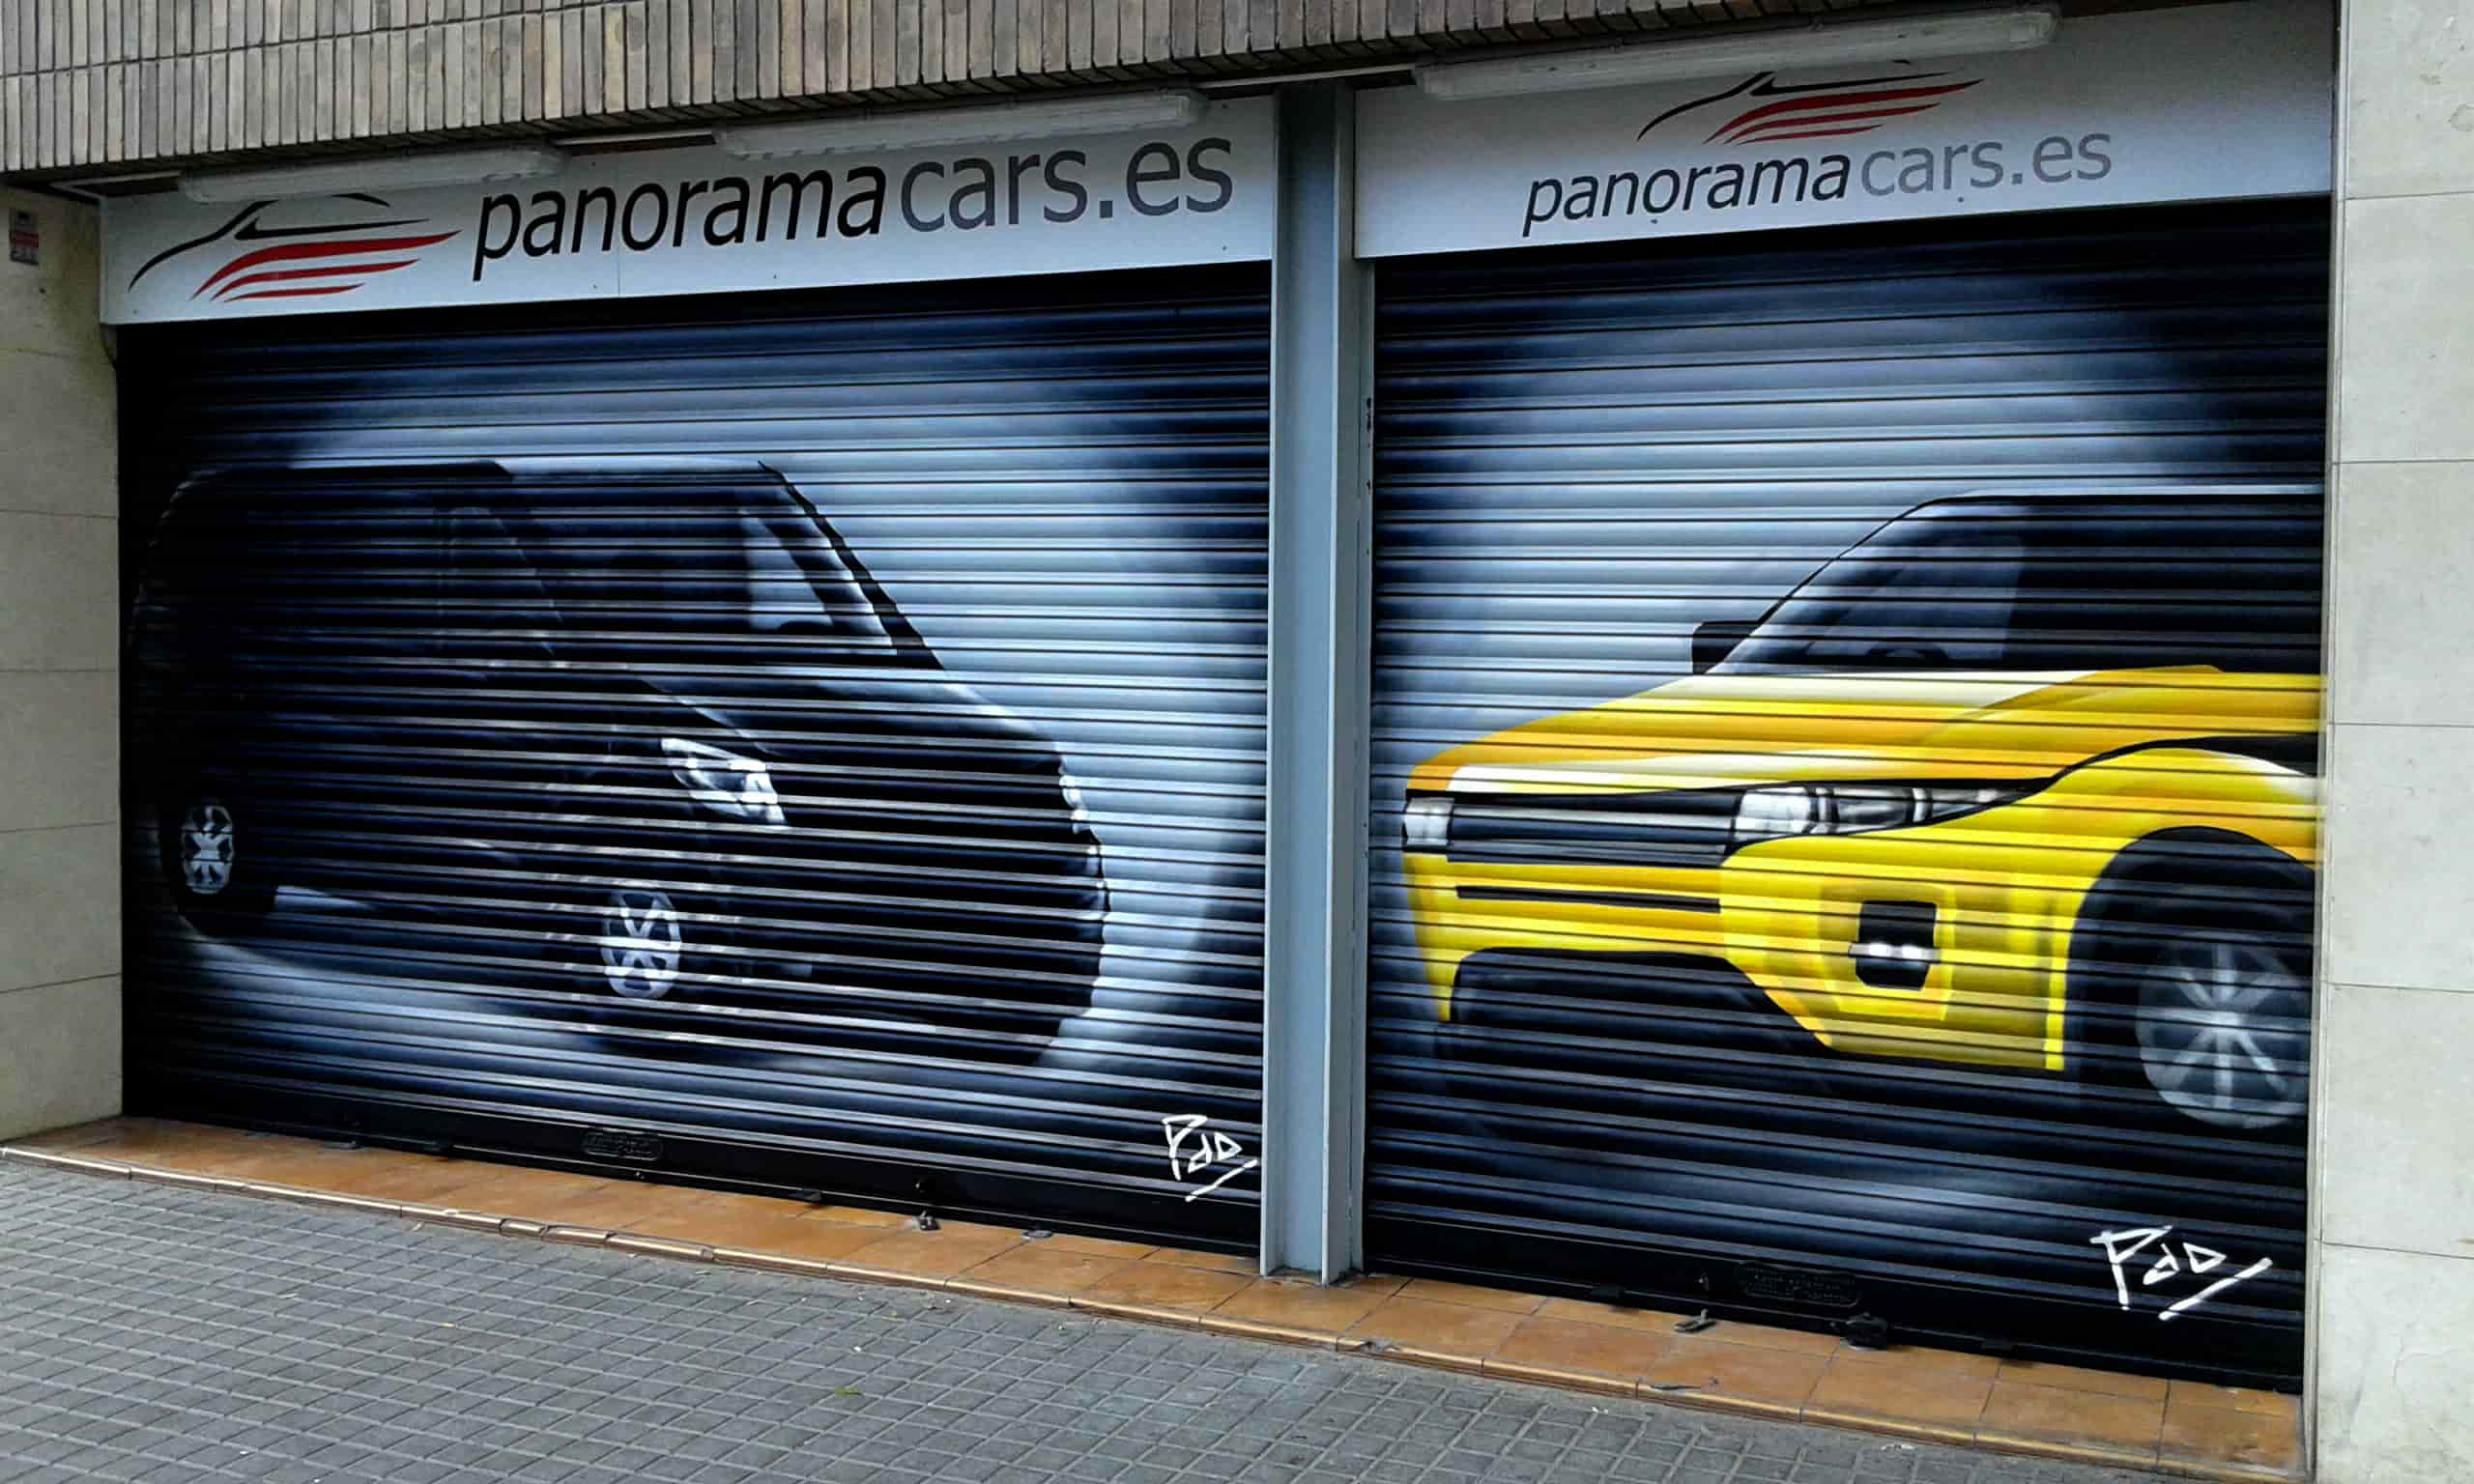 Graffitis en Persianas de Coches